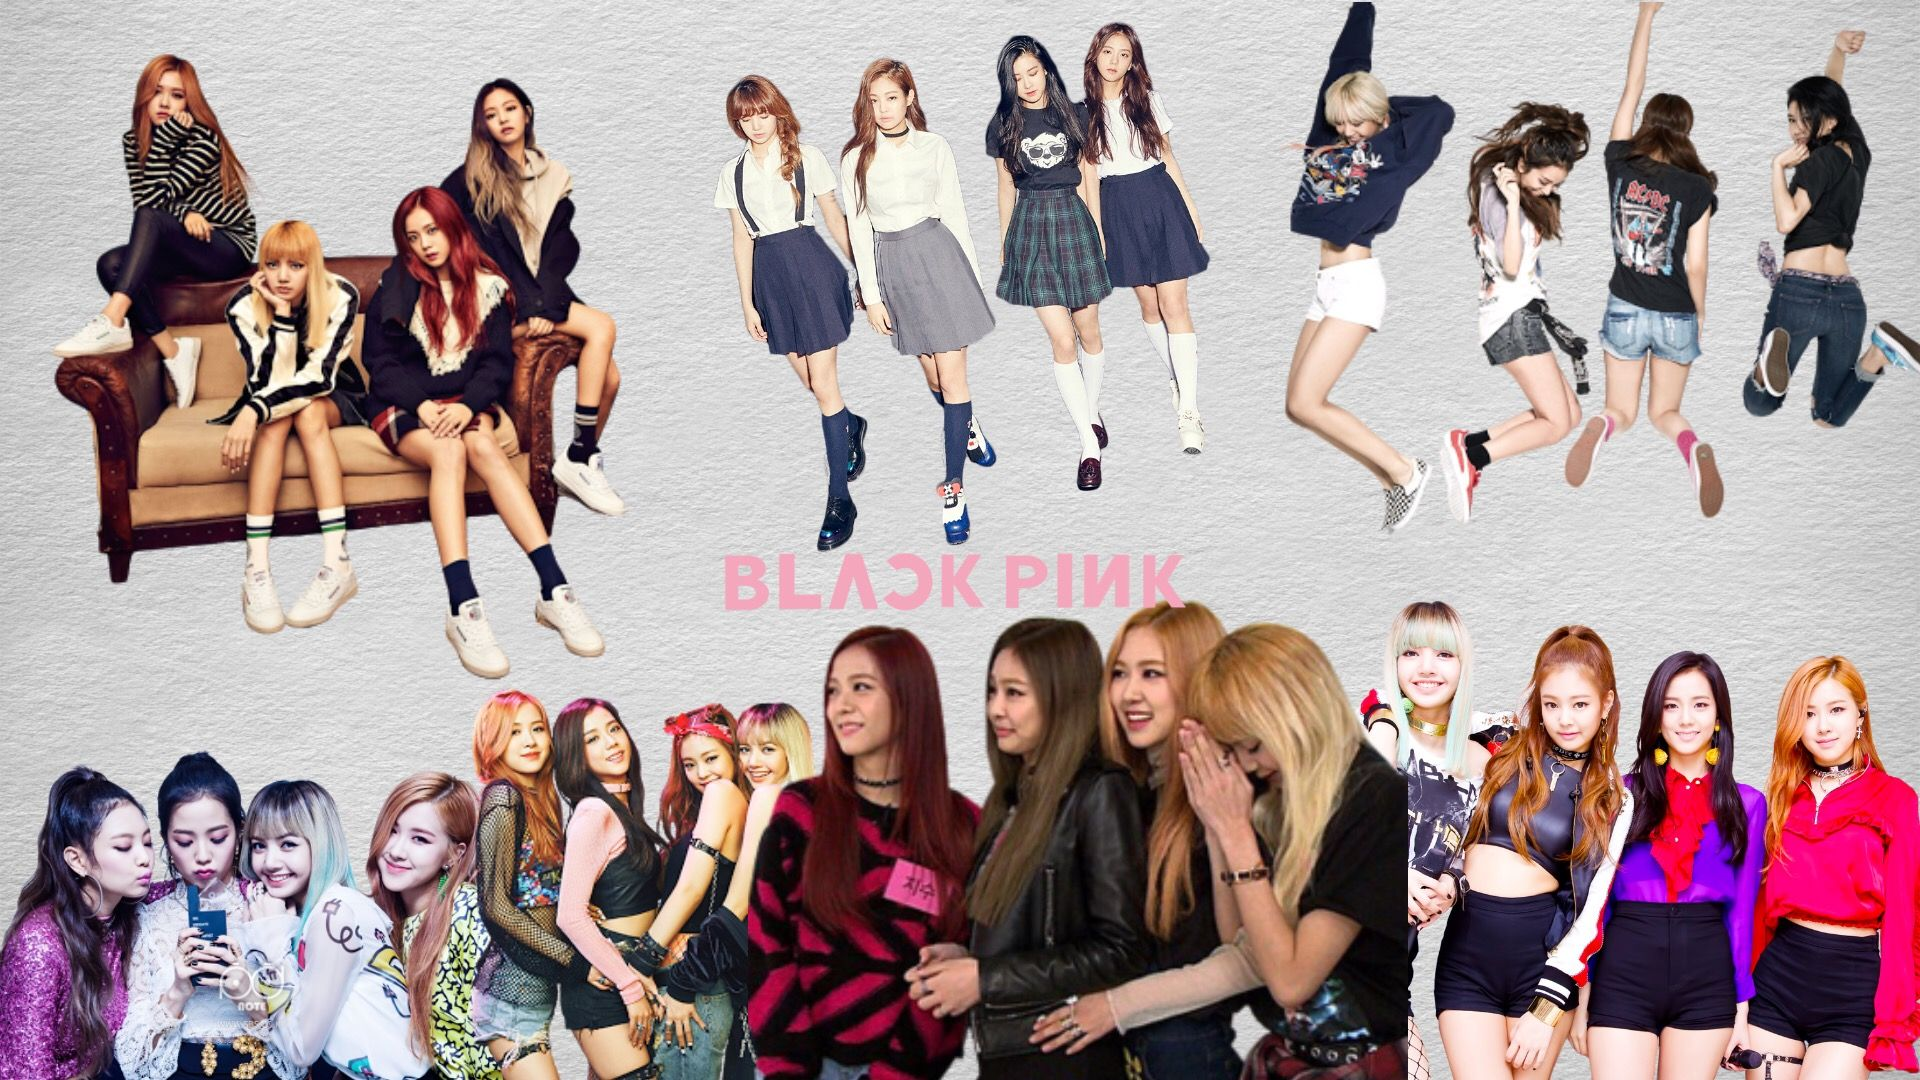 This Is My BLACKPINK IPad wallpaper ^^ This is my page